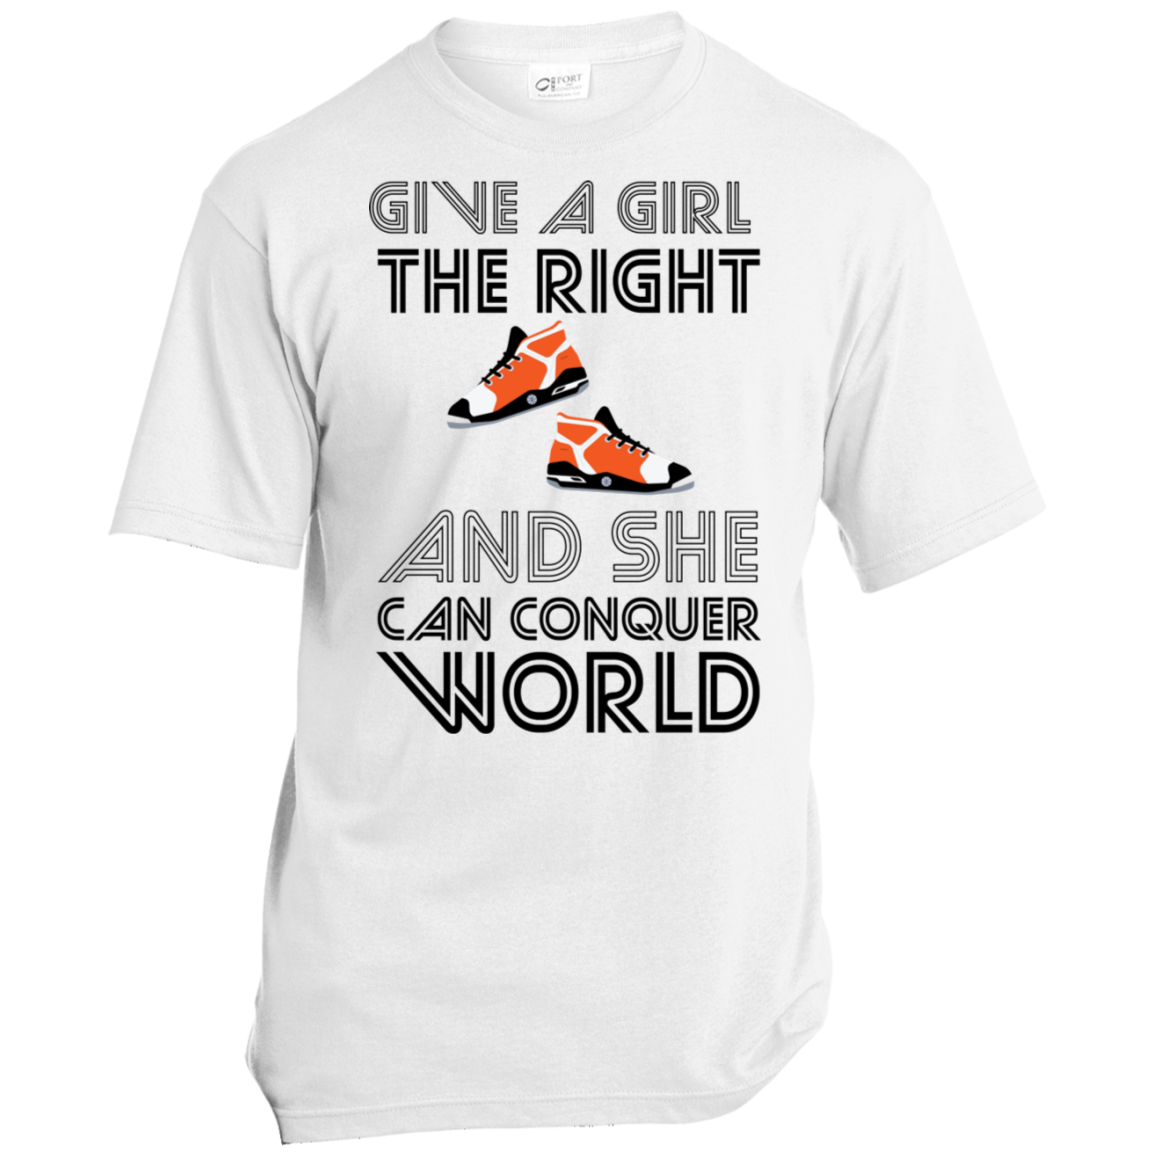 Give a girl the right shoes and she can conquer the world v2 USA100 Port & Co. Made in the USA Unisex T-Shirt